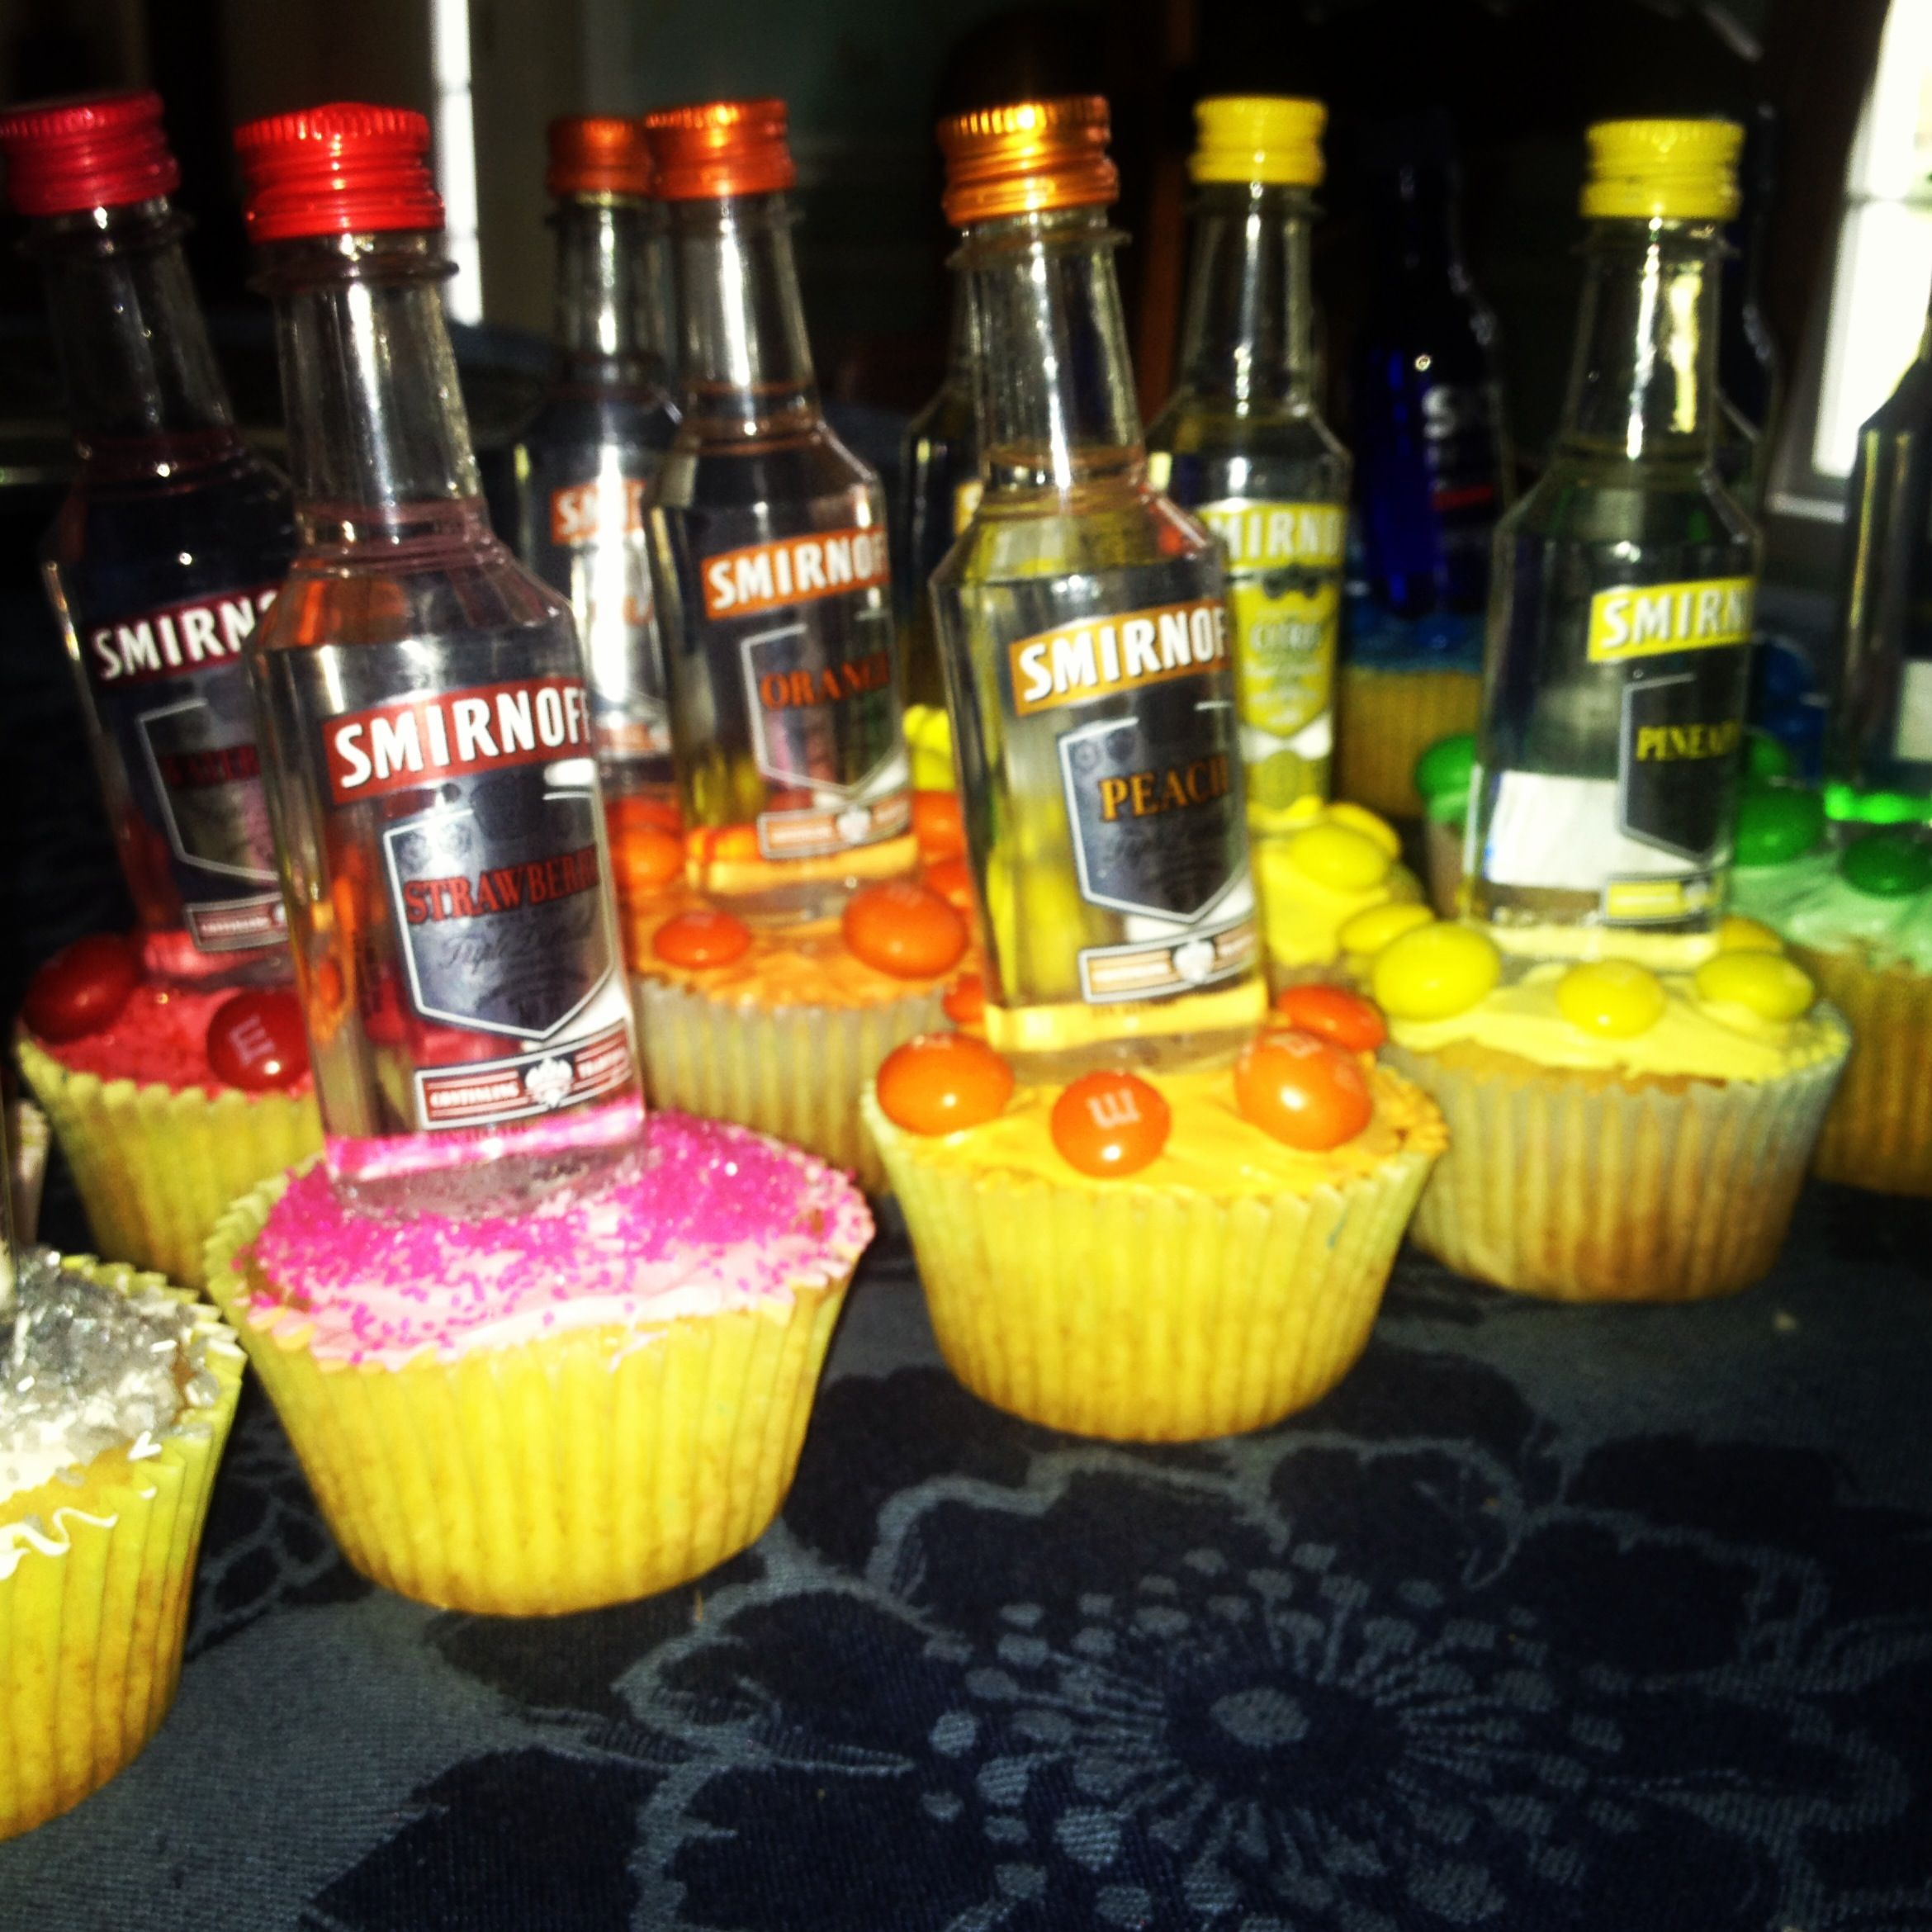 21st Birthday Cupcake Shots Gift Ideas Pinterest